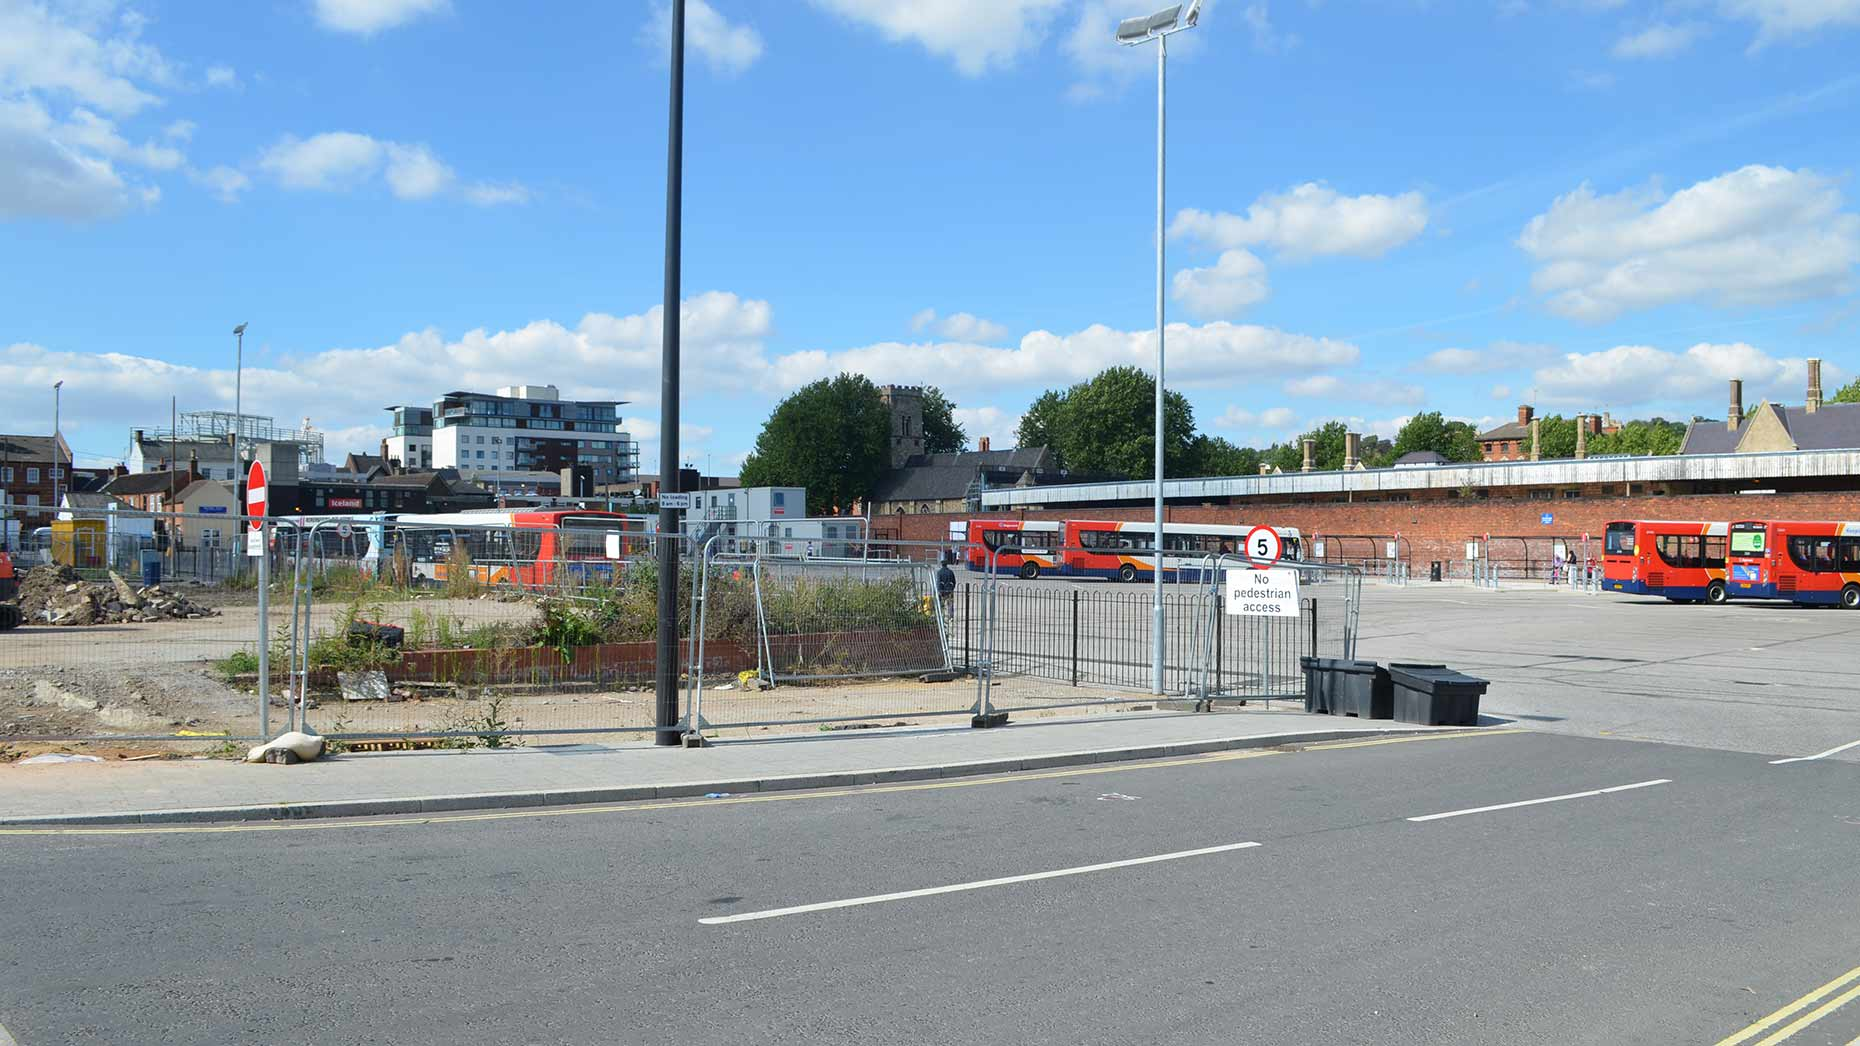 The temporary bus station is located on Tentercroft Street. Photo: Sophie Bee